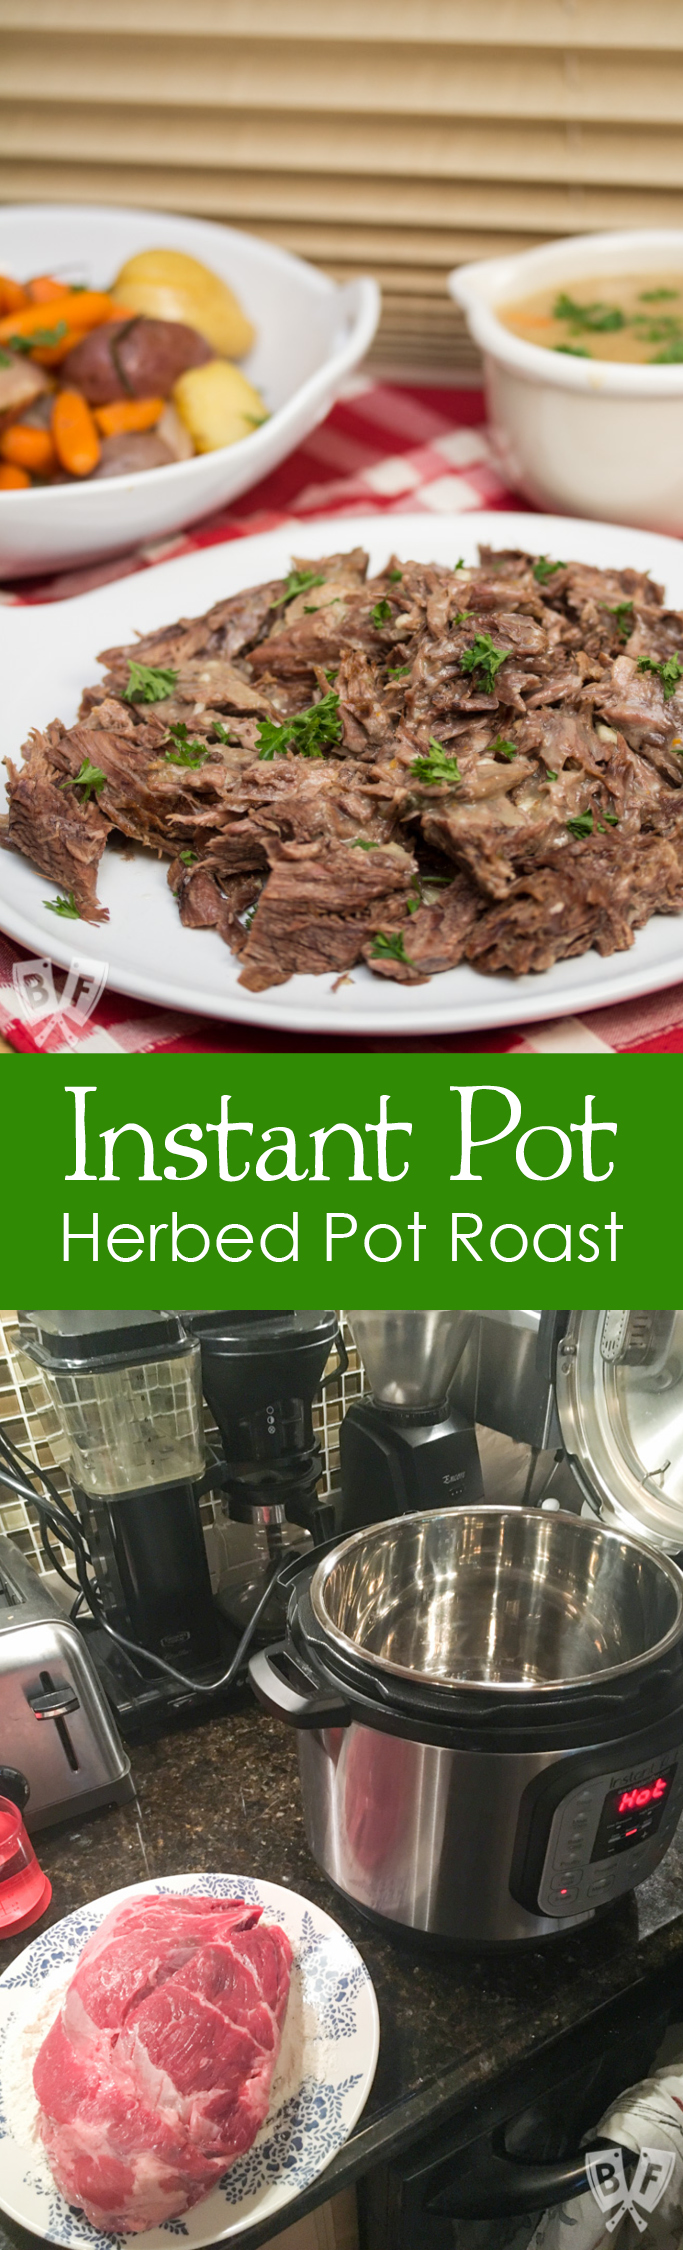 Instant Pot Herbed Pot Roast: An electric pressure cooker makes this family favorite comfort food meal possible in a fraction of the time!